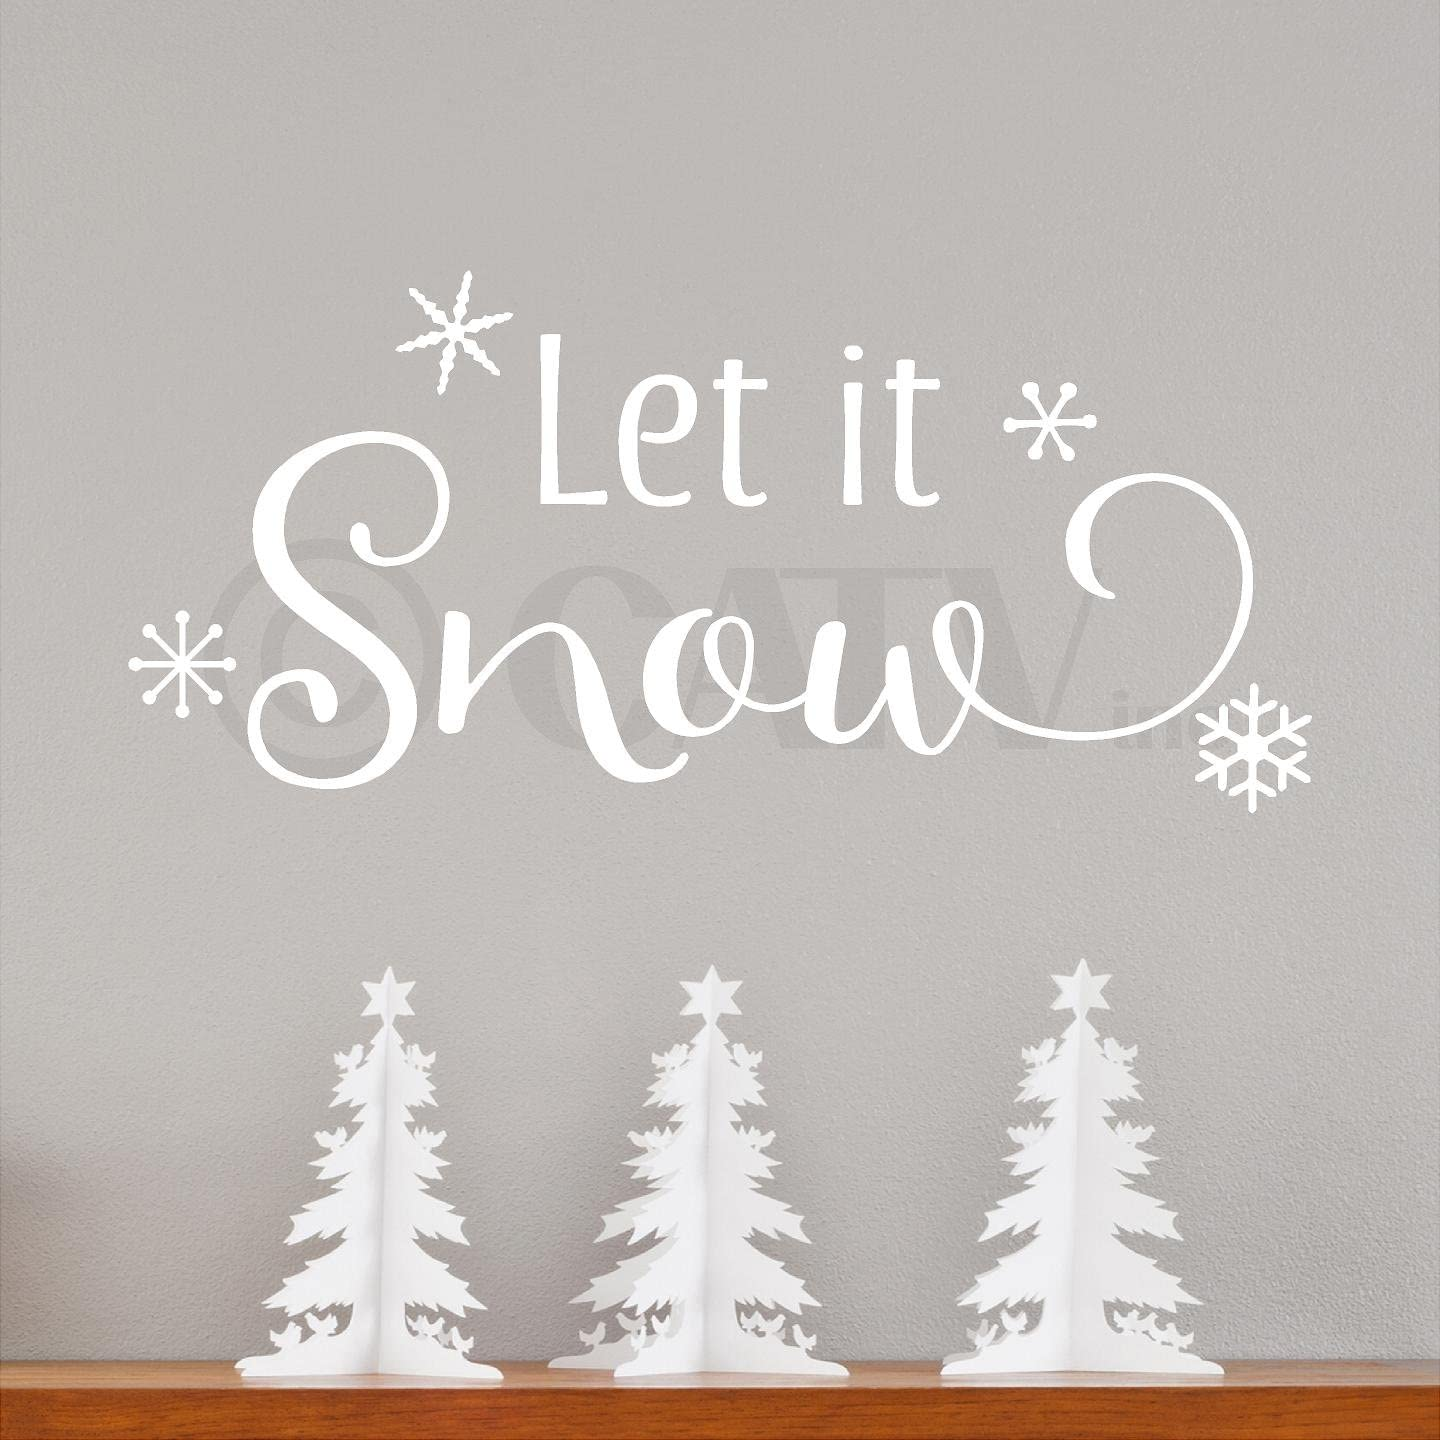 Amazon Com Let It Snow With Snowflakes Vinyl Lettering Wall Decal Style A 12 5 H X 27 L White Arts Crafts Sewing